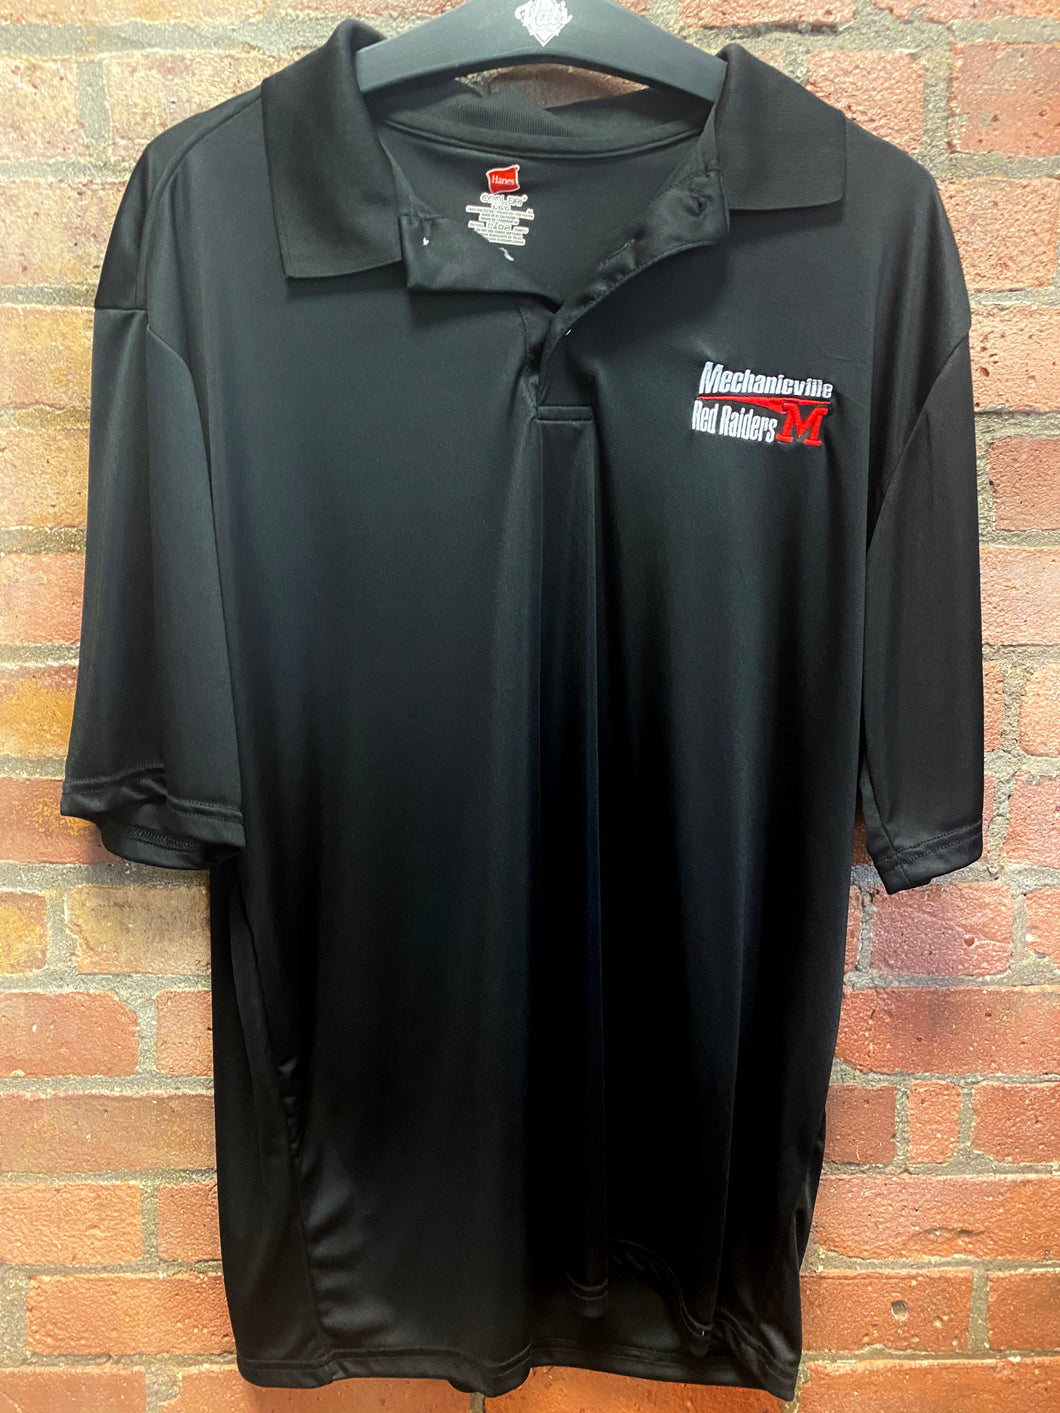 CLEARANCE- Mechanicville Red Raiders Polo